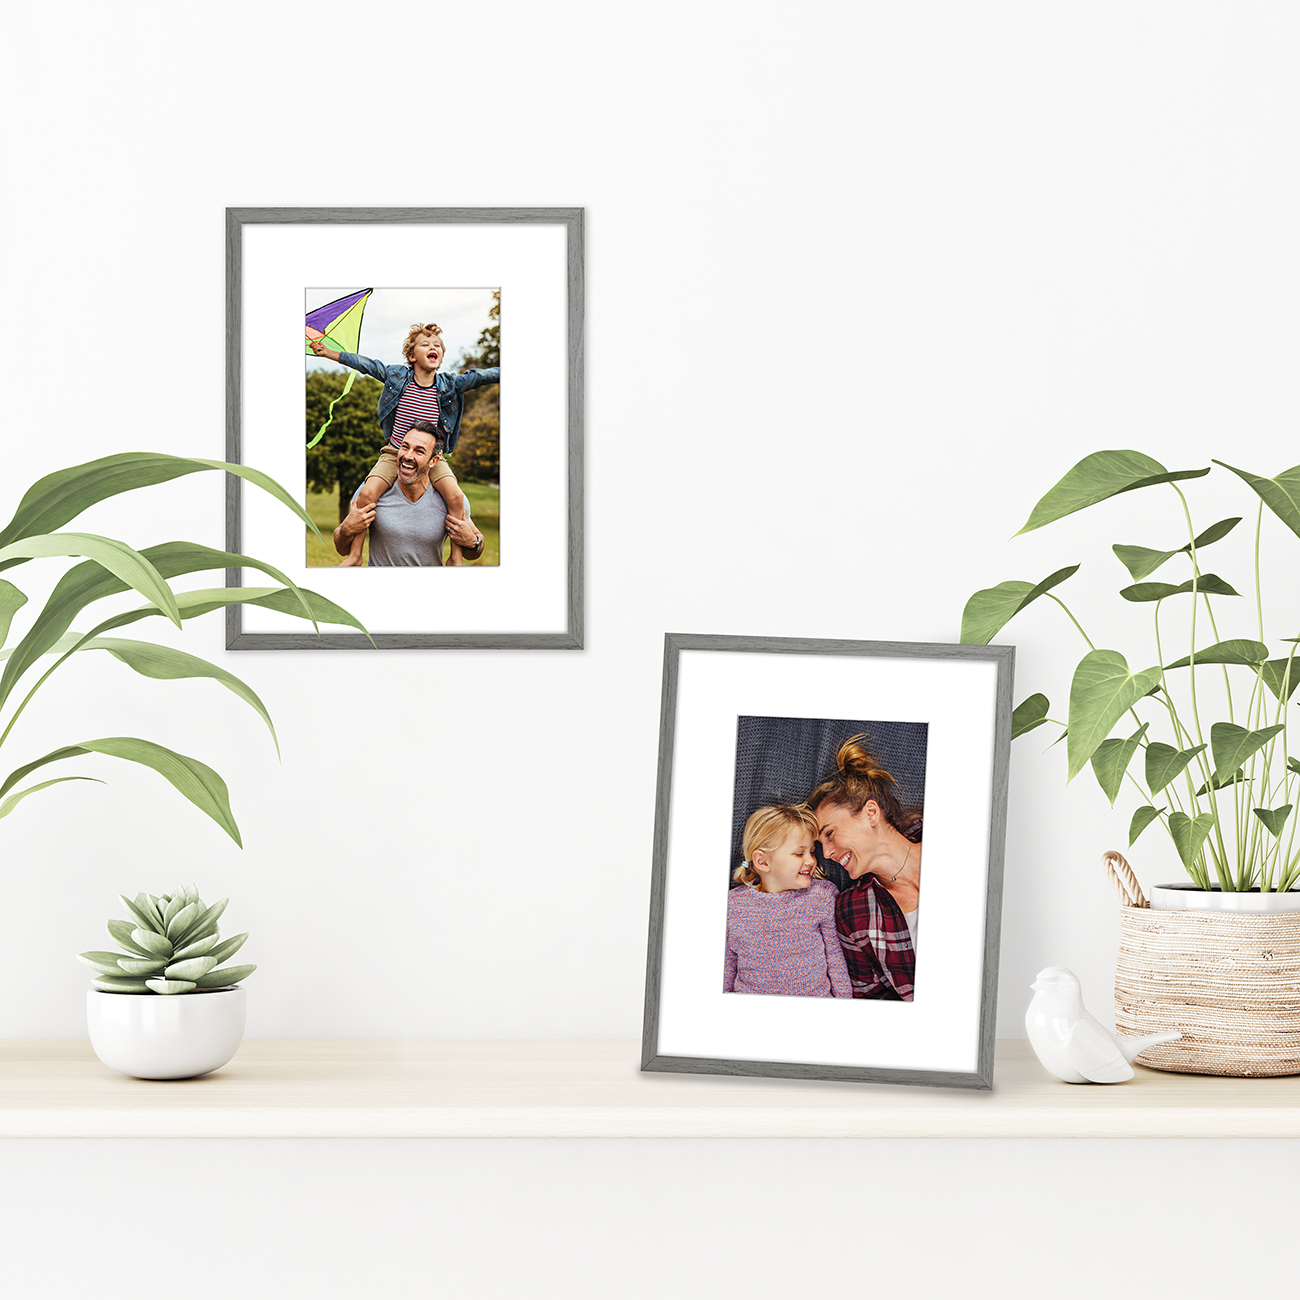 miniature 48 - Americanflat Thin Picture Frame 5x7 8x10 11x14 8.5x11 Wall Tabletop Pick Color